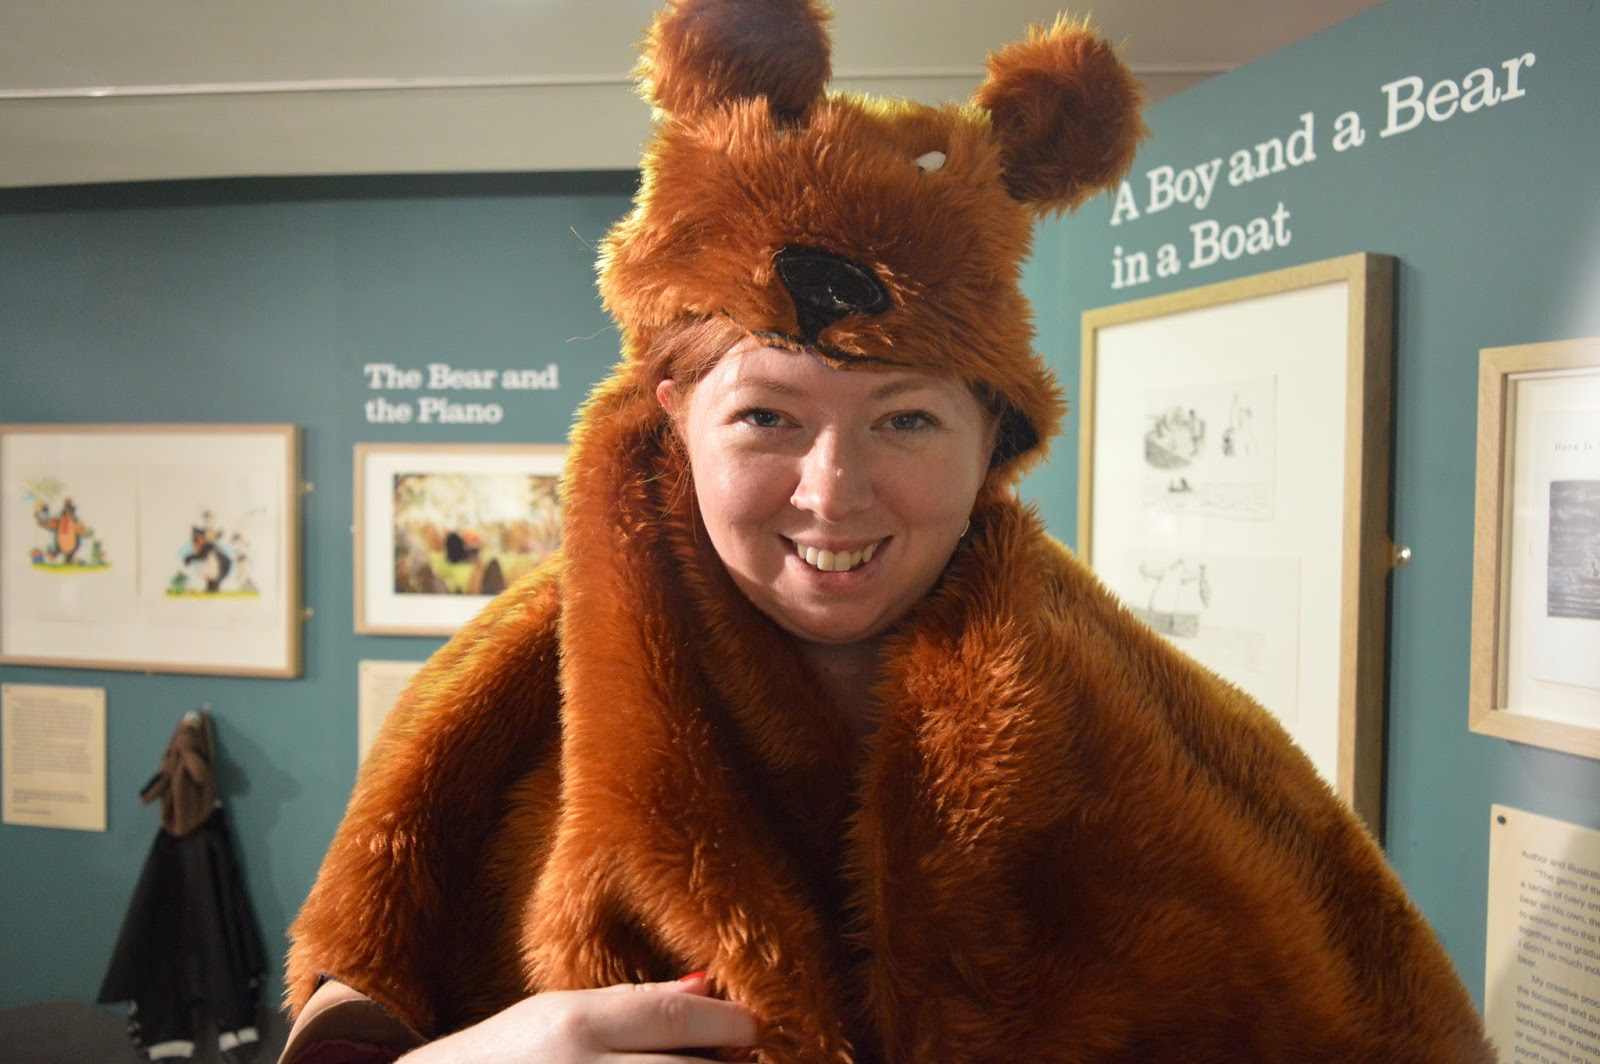 Seven Stories Newcastle | Parking & Admission plus Bears! Exhibition Review - bear dress up costume